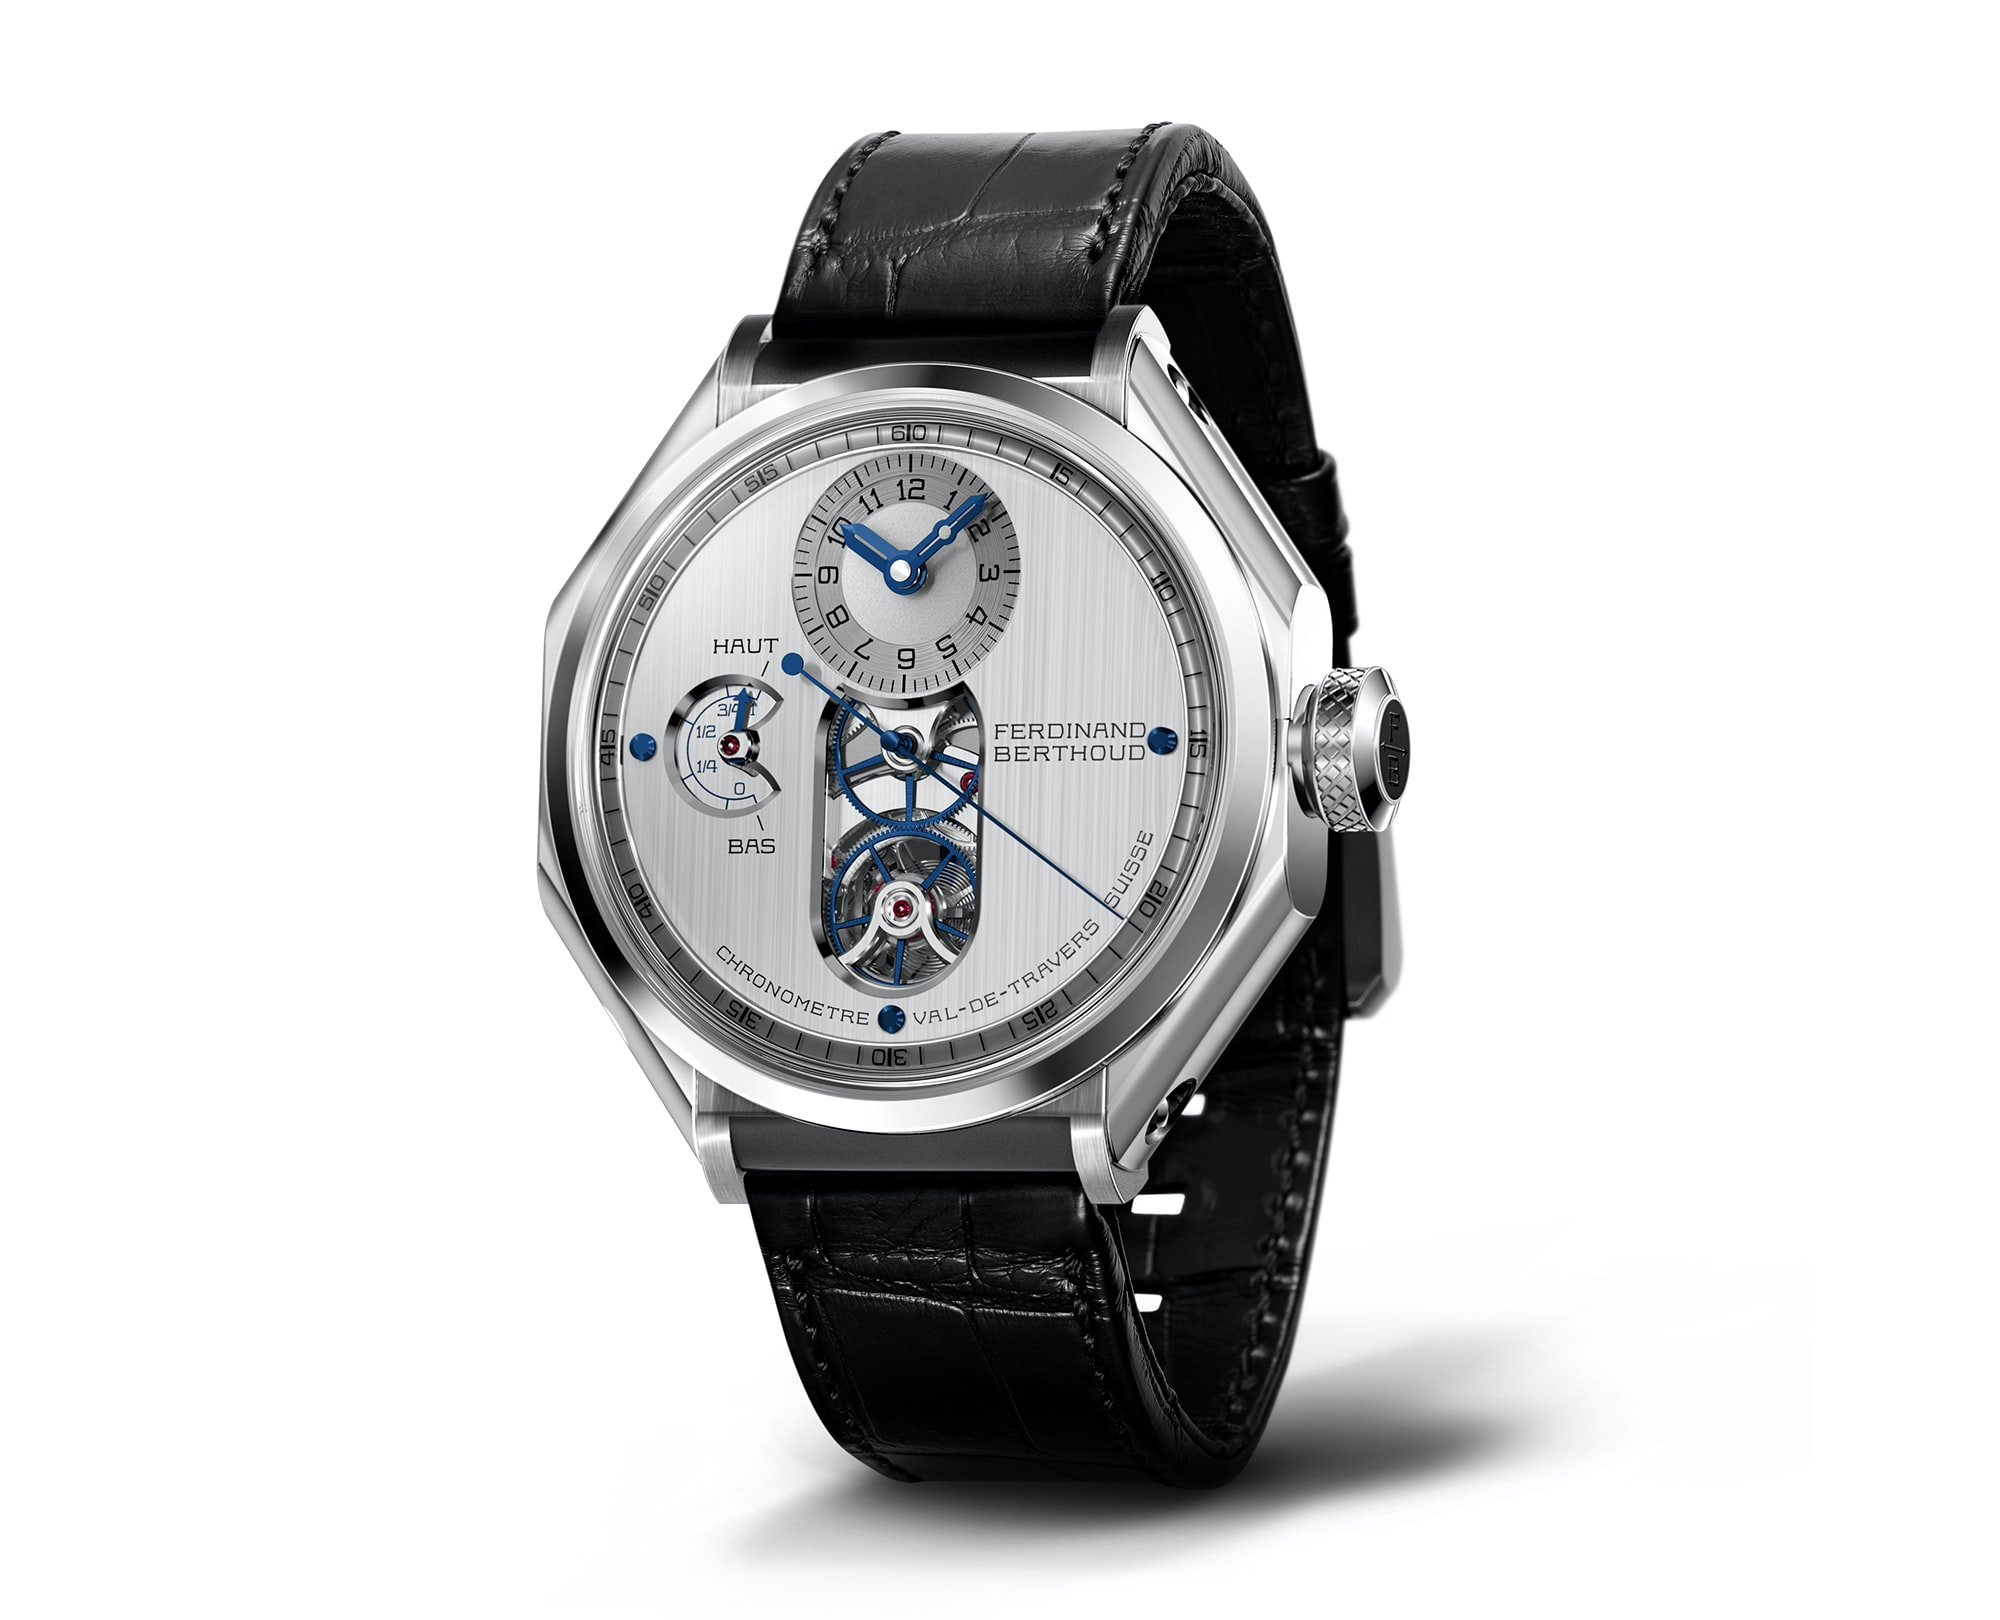 Just announced at Dubai Watch Week: the newest version of the Chopard Group's Ferdinand Berthoud watch. Happenings: Dubai Watch Week 2017 Happenings: Dubai Watch Week 2017 FB